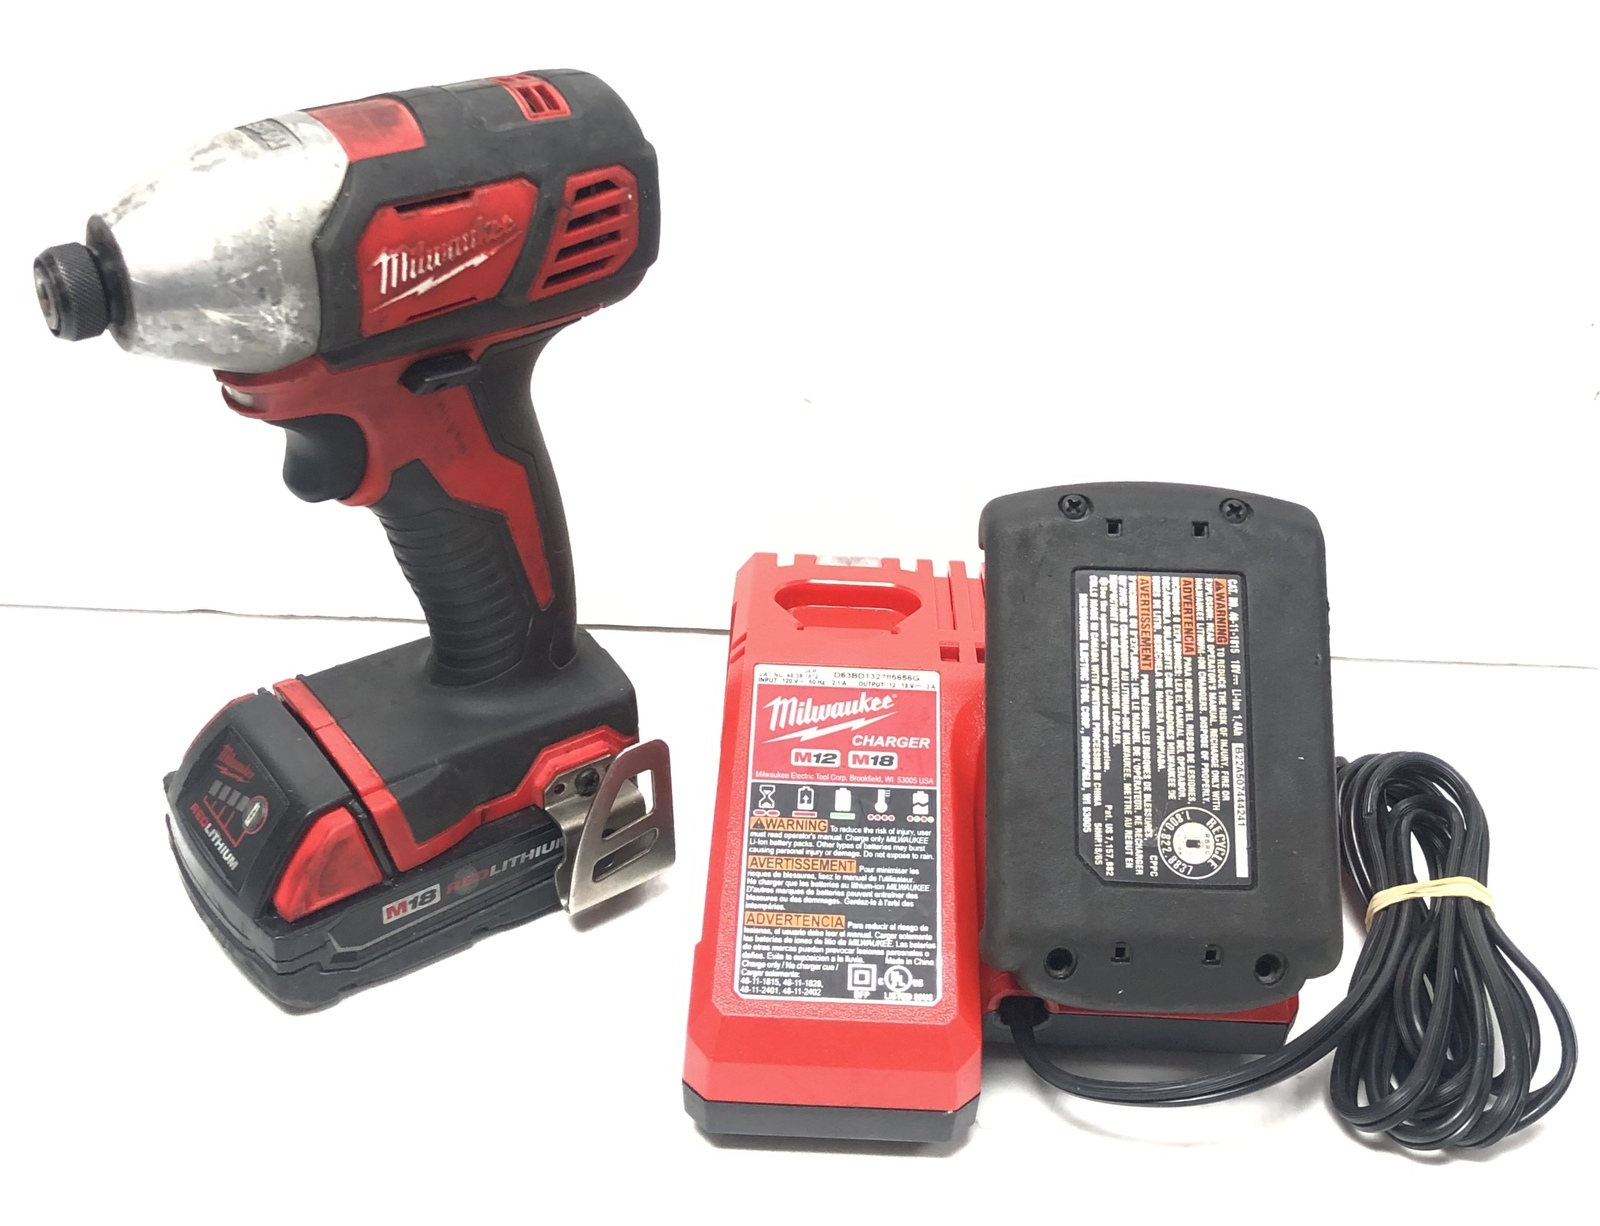 Milwaukee Cordless Hand Tools N/a